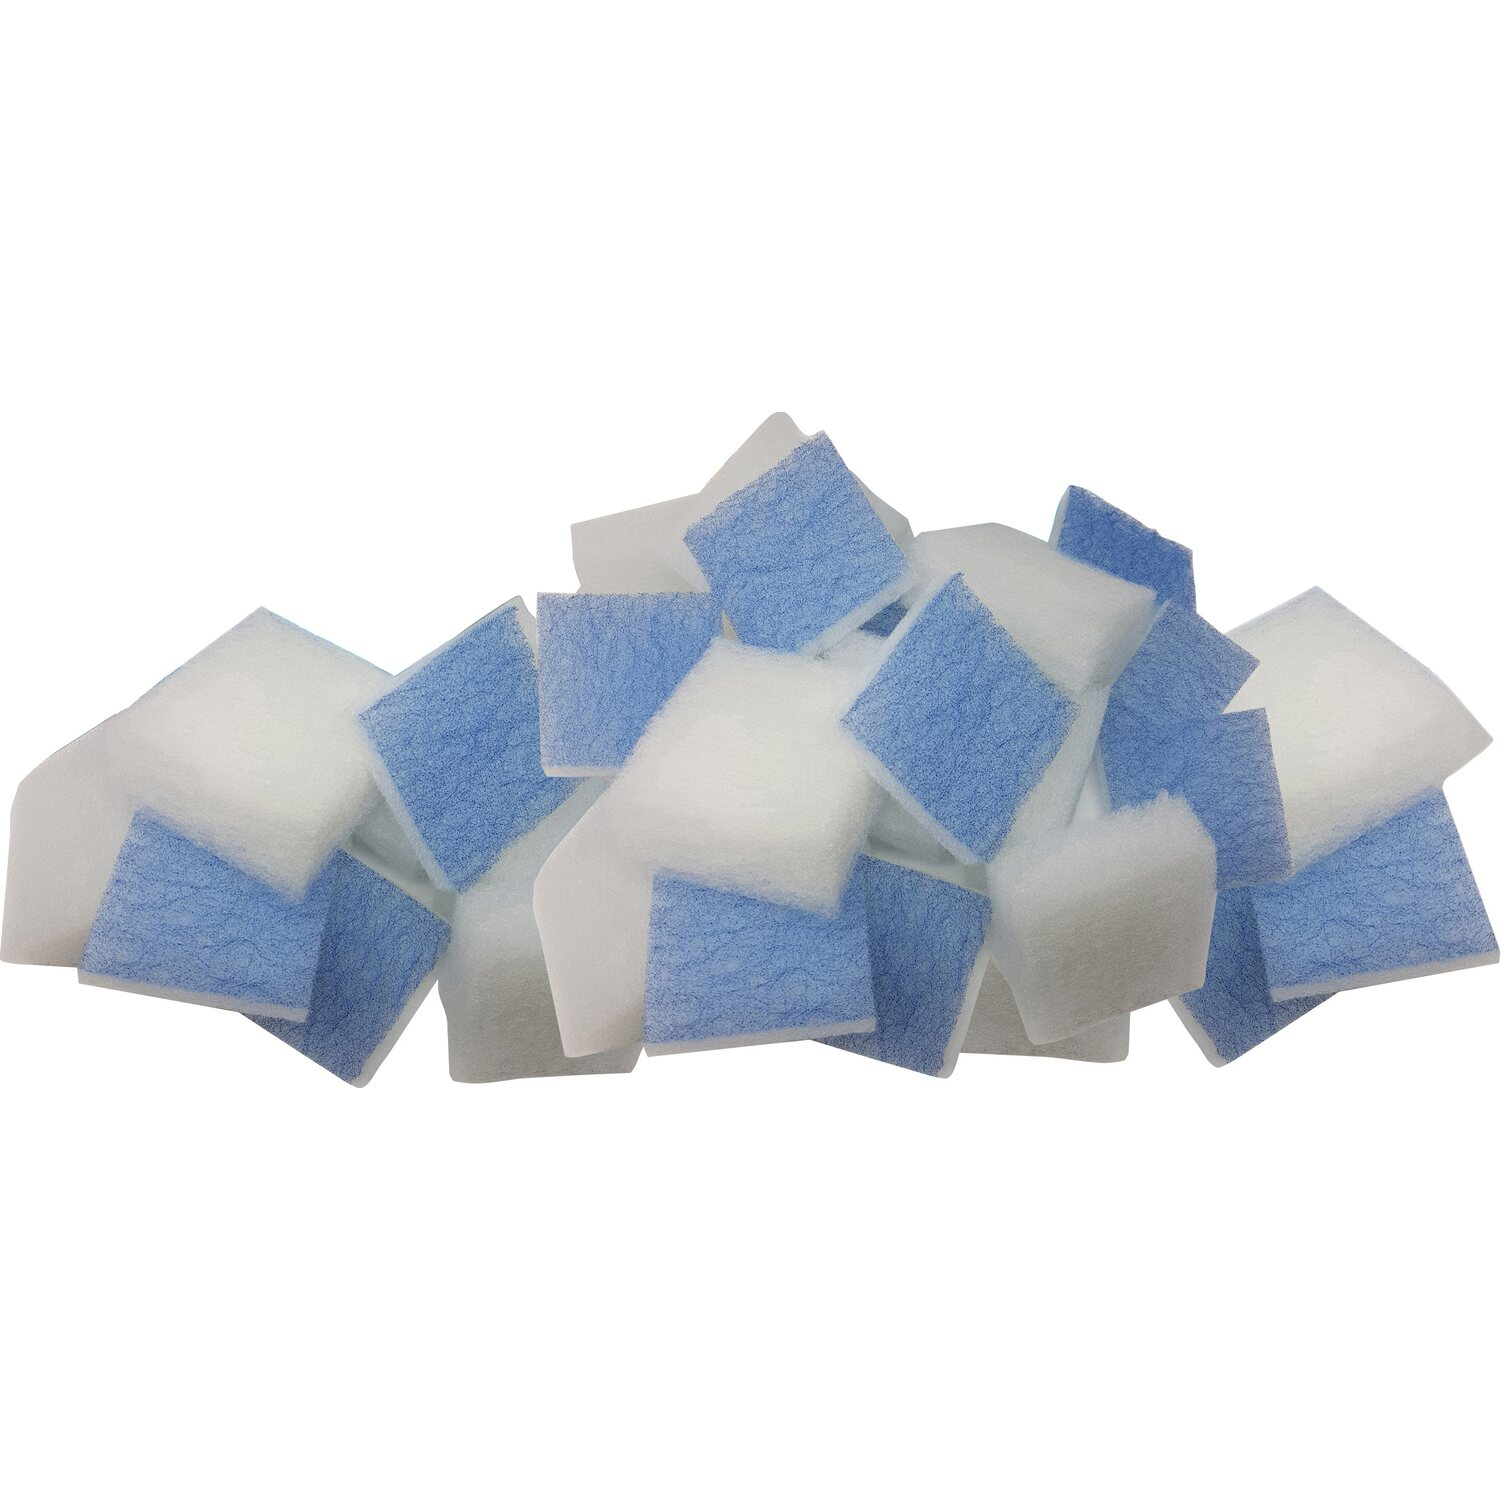 Summer fun filtercubes f r pool filter kaufen bei obi for Obi filtersand pool